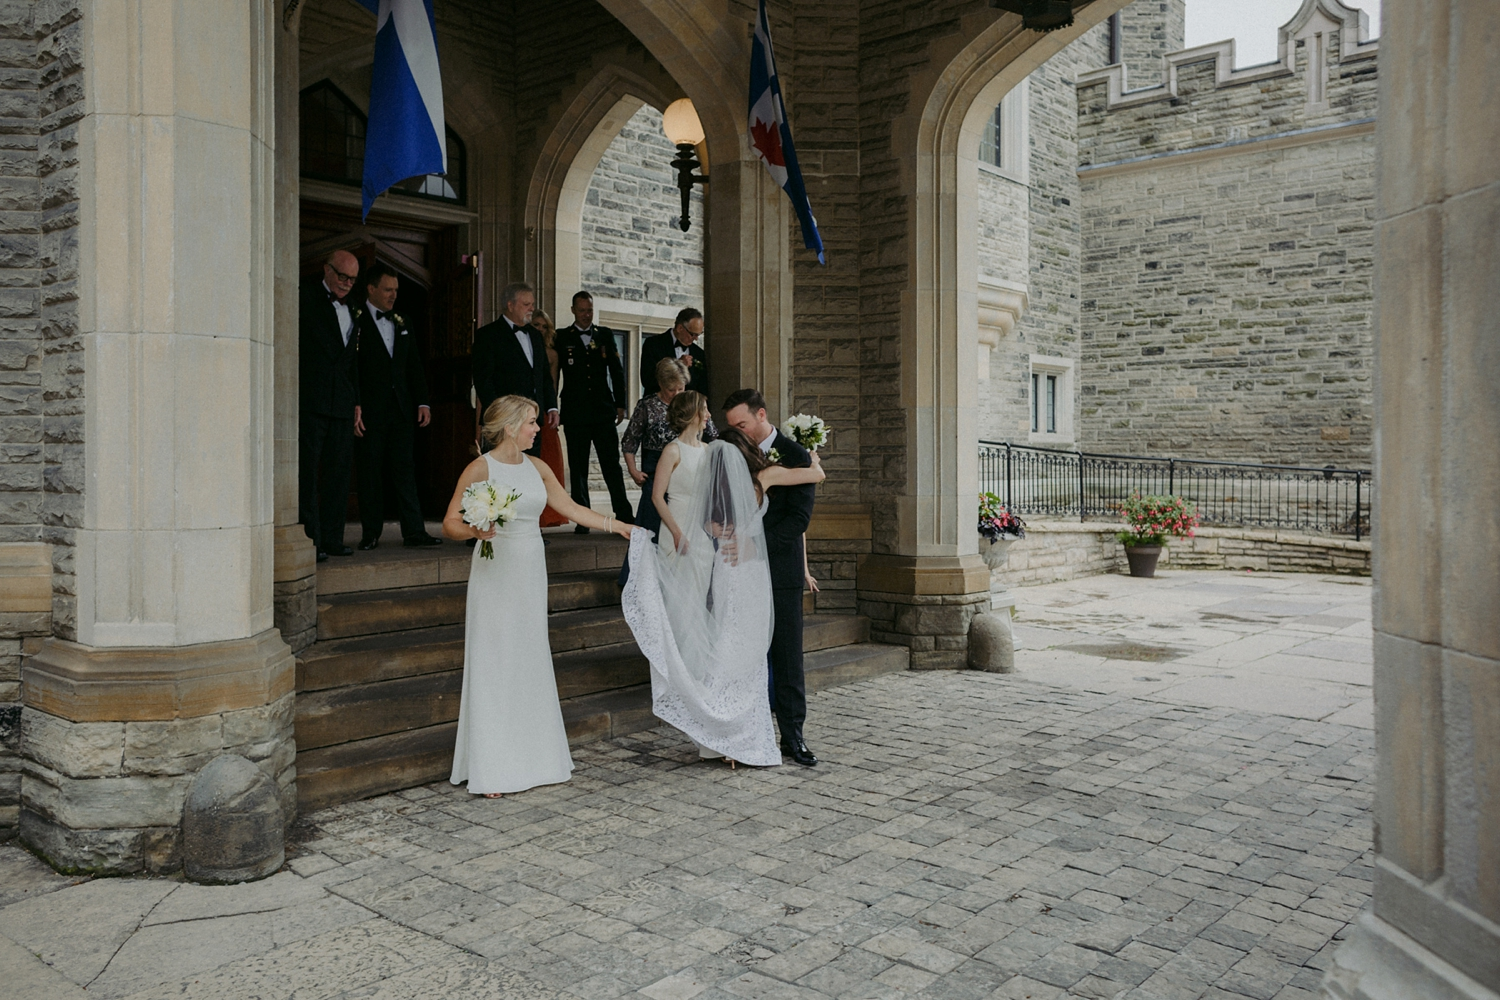 DanijelaWeddings-wedding-Toronto-CasaLoma-Berta-romantic-castle127.JPG